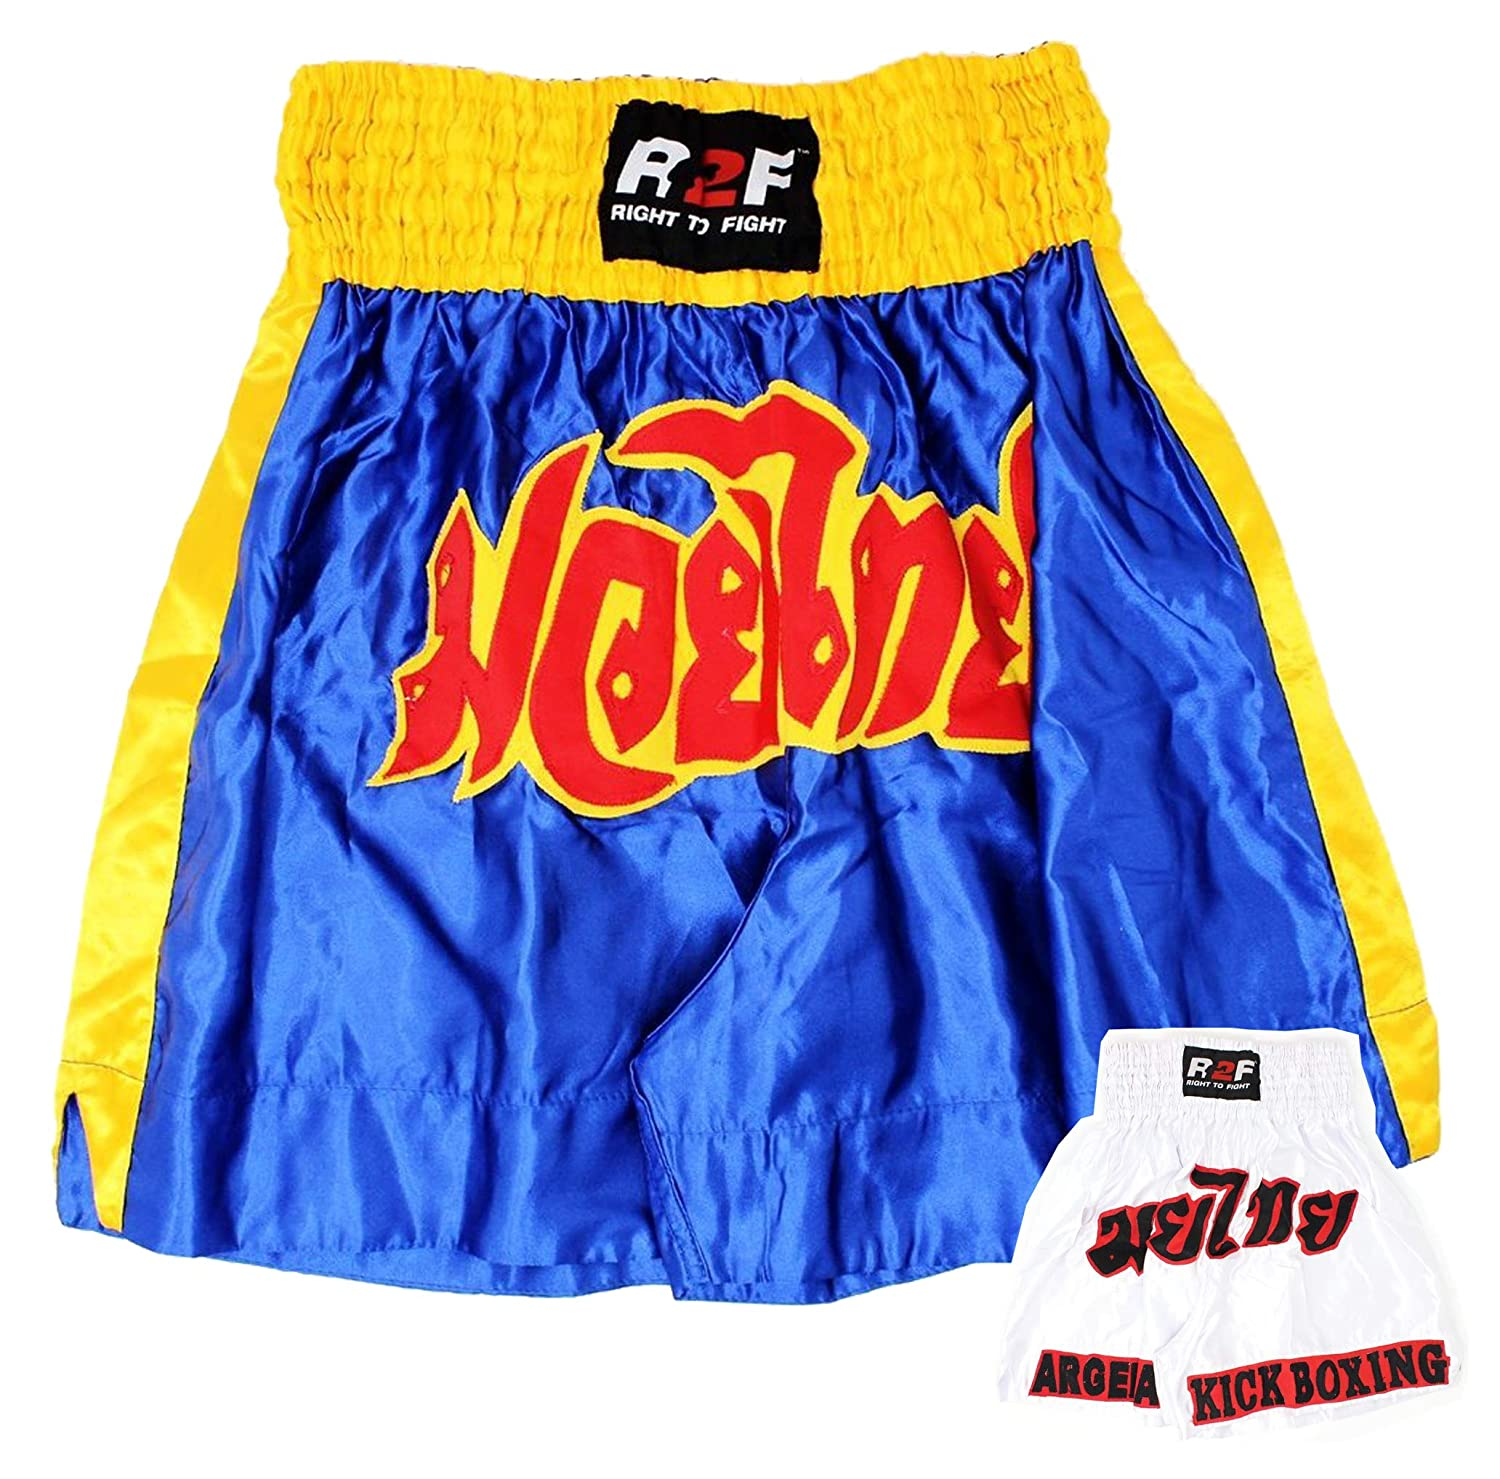 R2F Sports Boxe Bats toi Short Grappling MMA Muay Thai Bas Entraînement Martial Arts Les Troncs